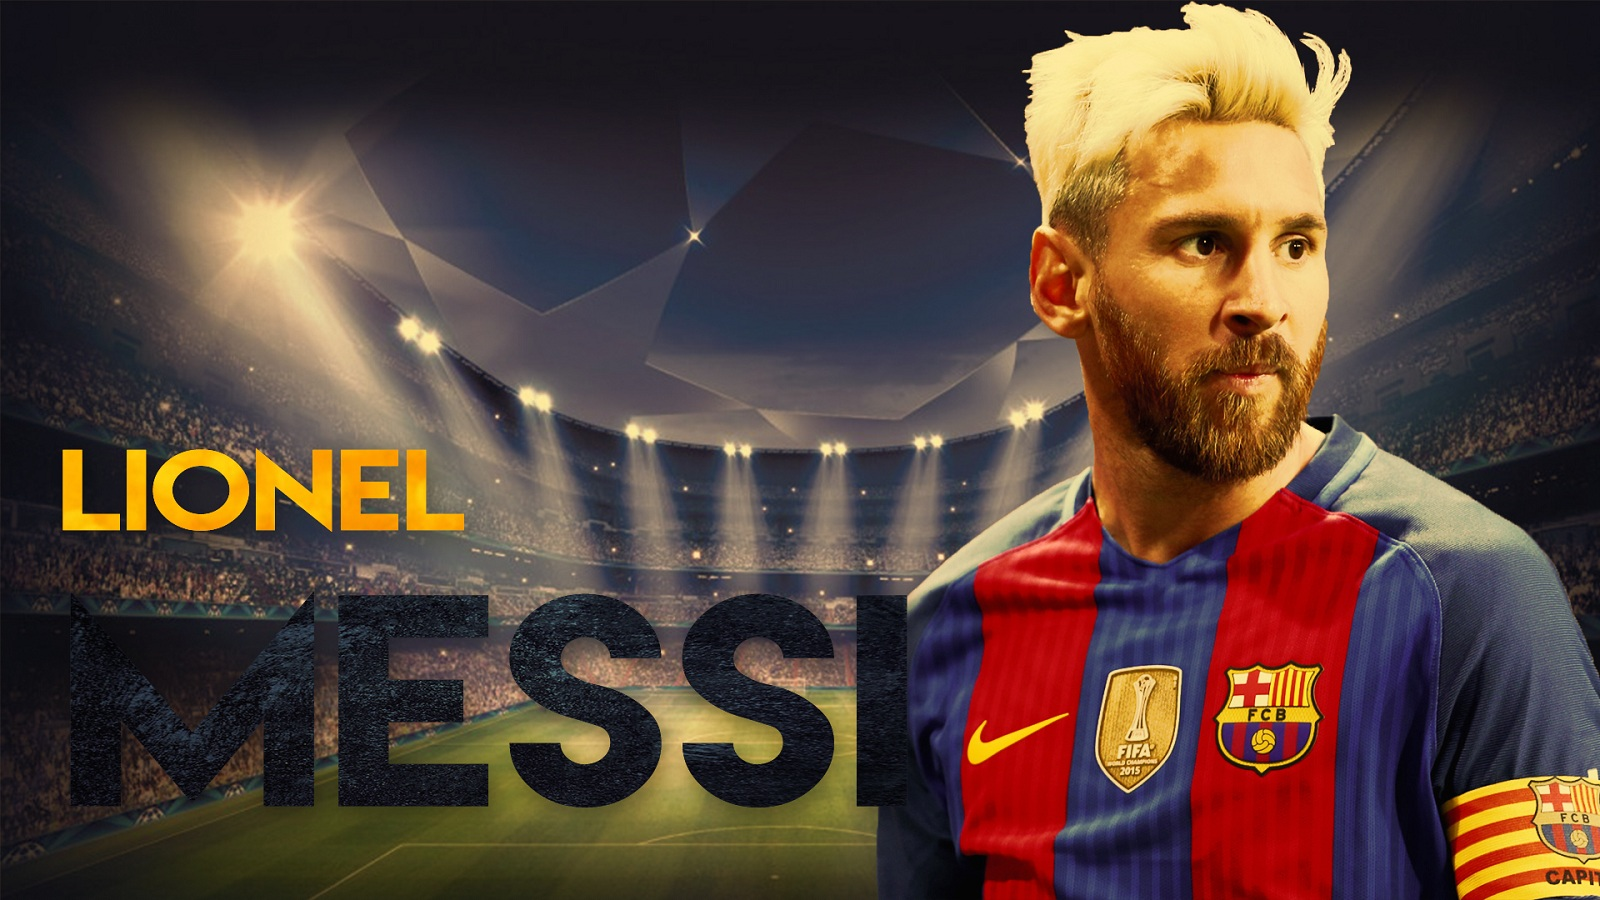 25 Lionel Messi Hd Wallpapers Wallpaperceiling